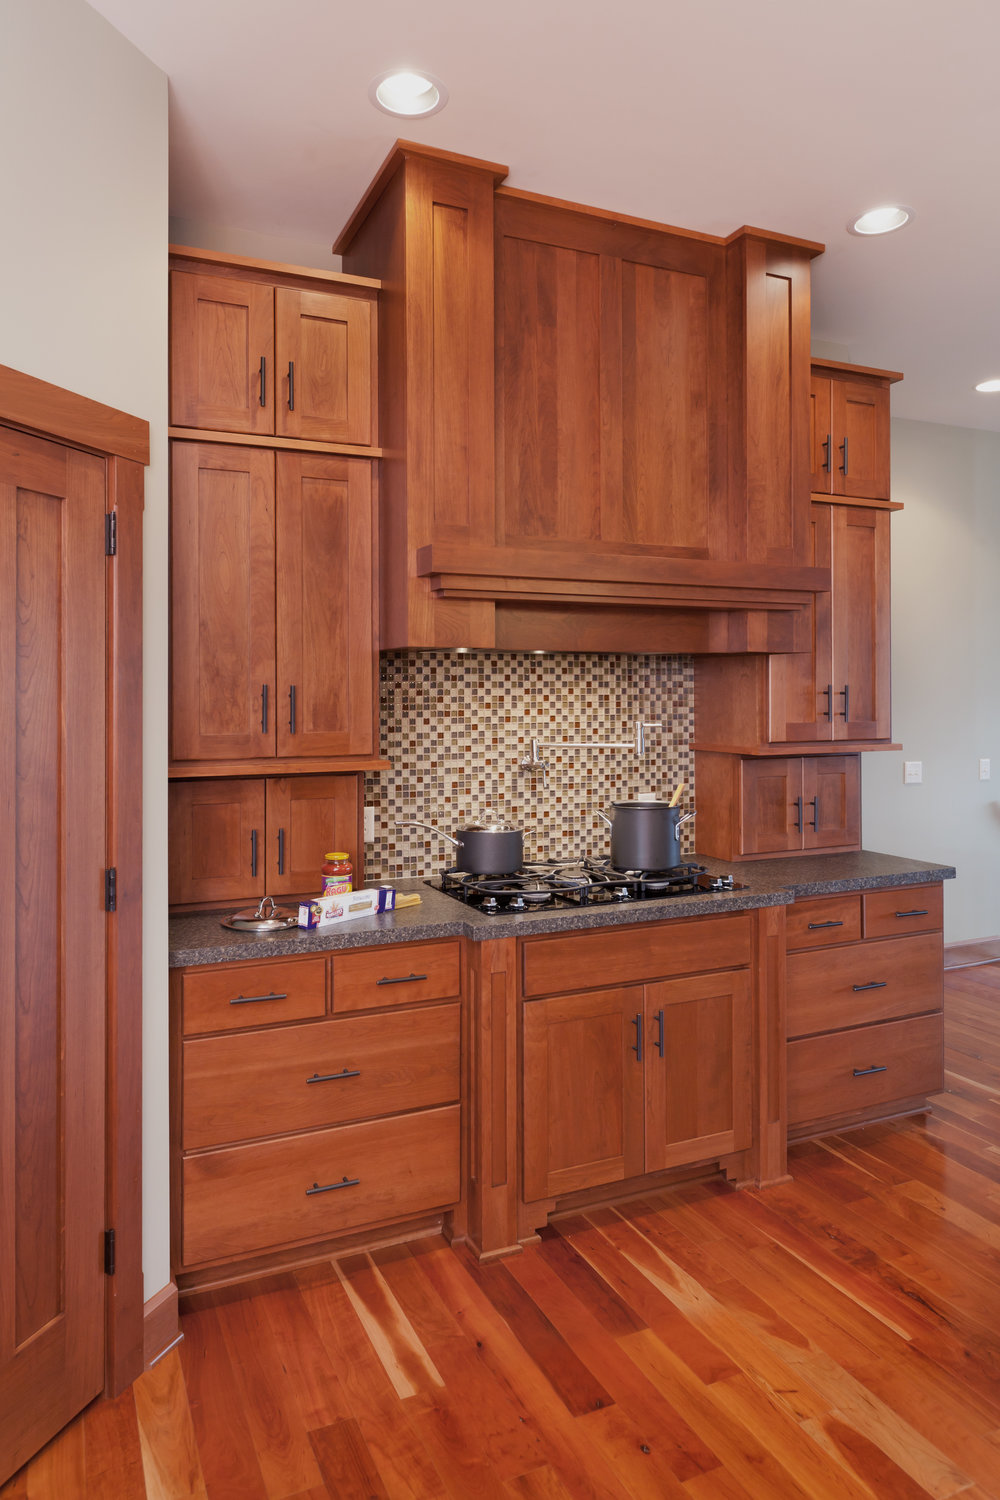 quality kitchen cabinets for sale in Stark County